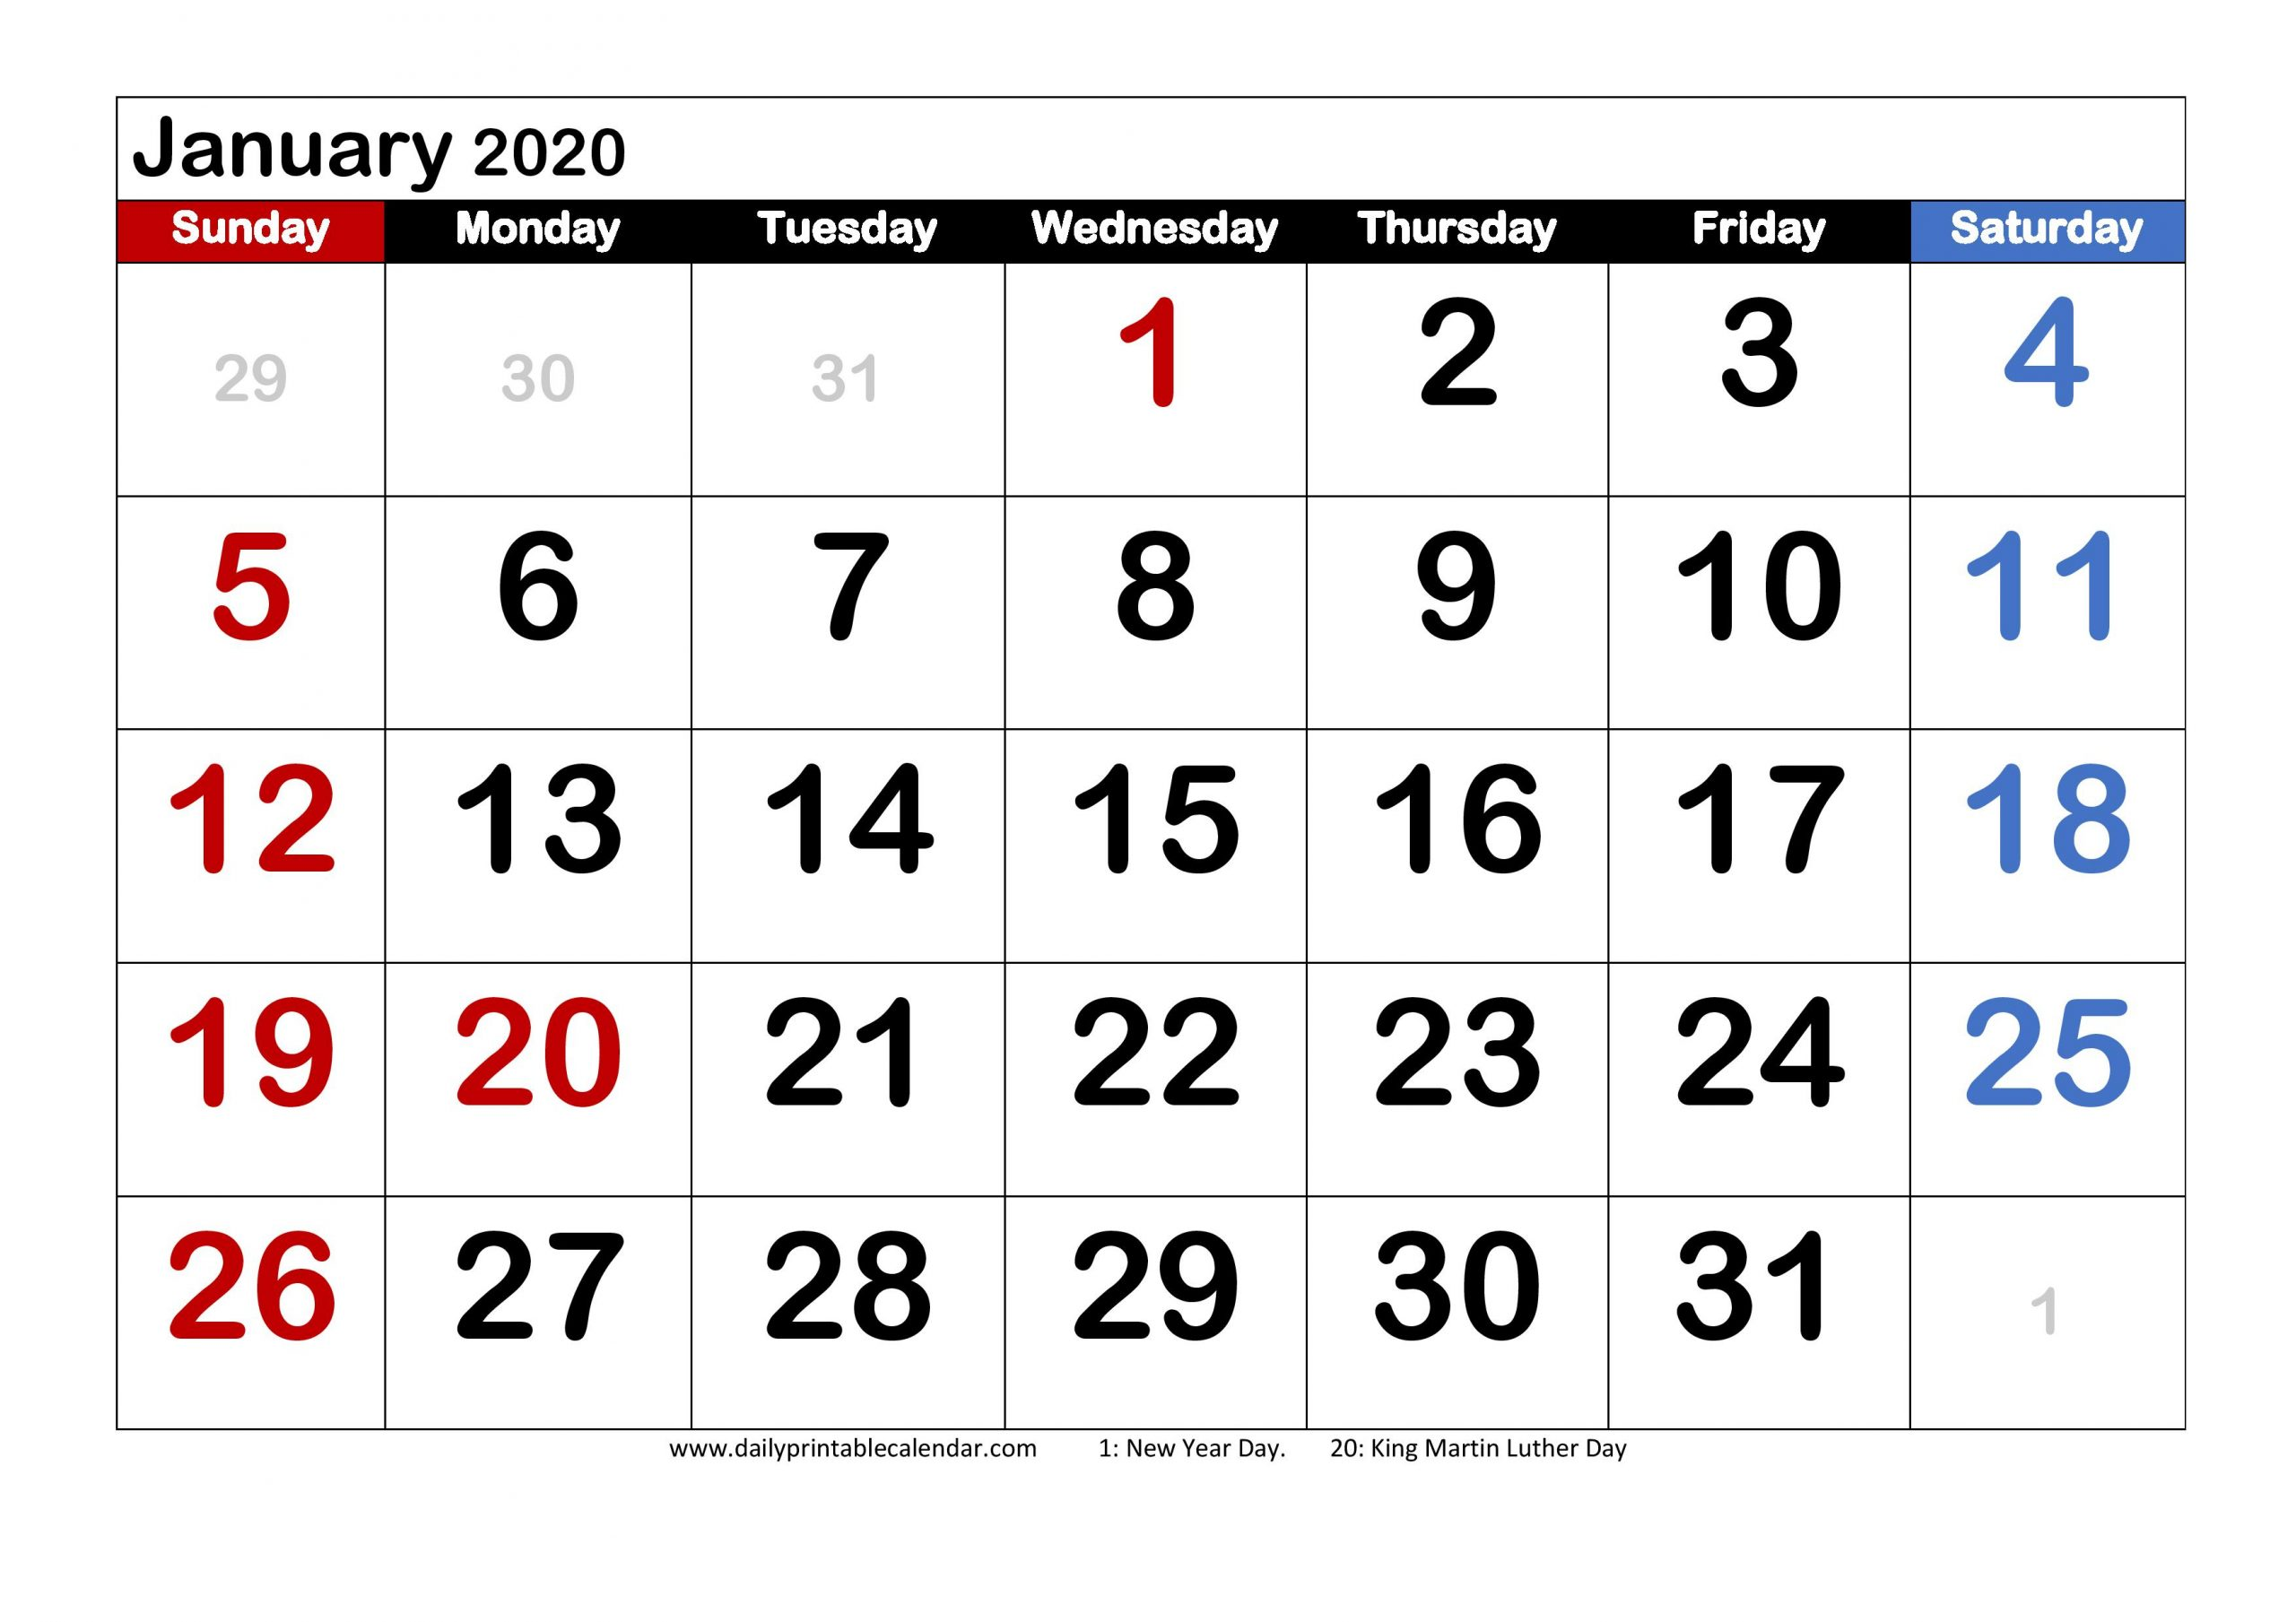 January 2020 Calendar Printable - Blank Templates - 2020